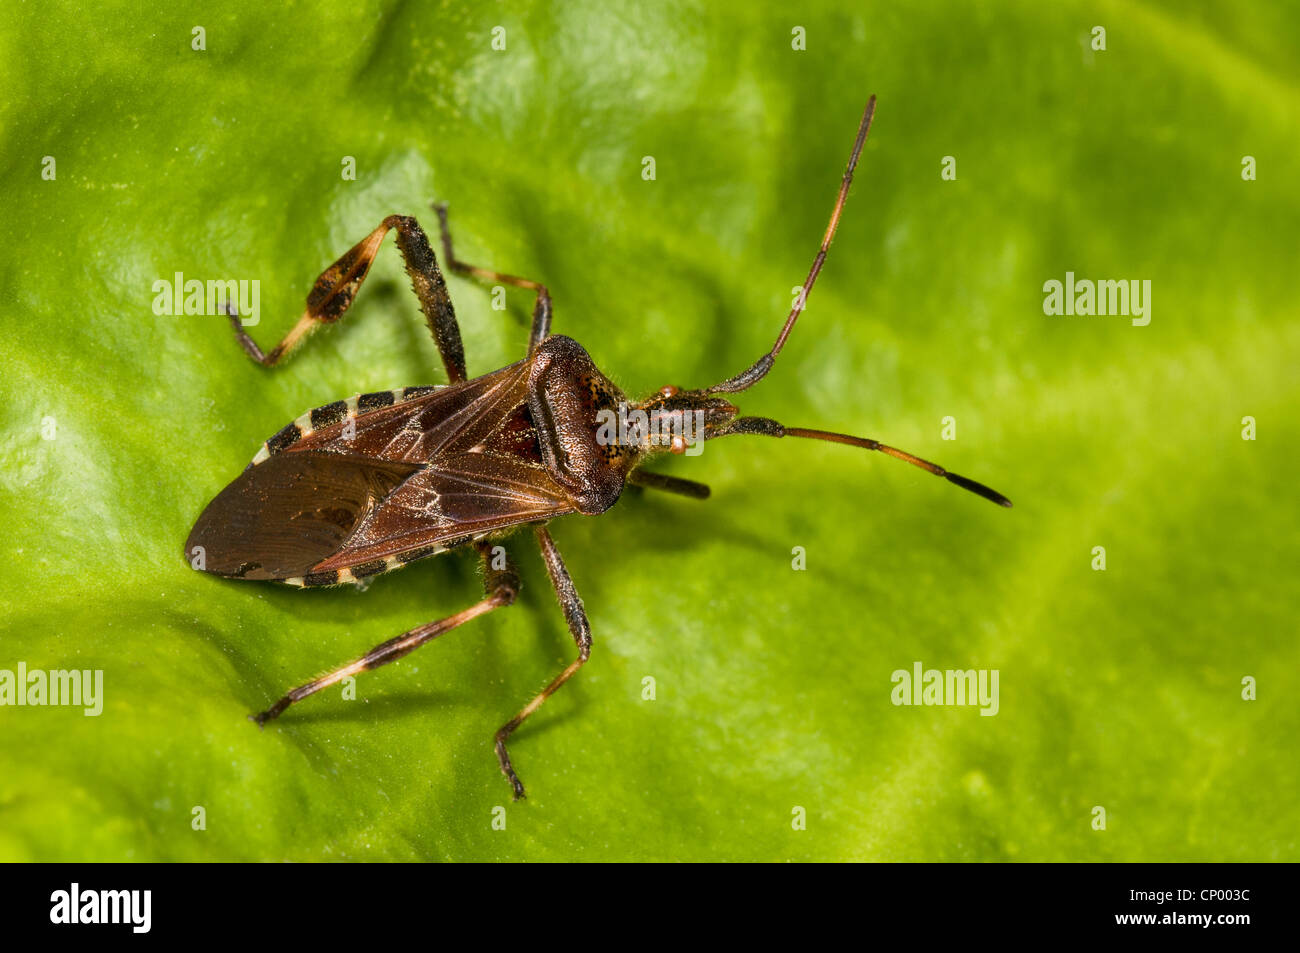 A western conifer seedbug (Leptoglossus occidentalis) resting on a leaf in a garden in Belvedere, Kent. - Stock Image